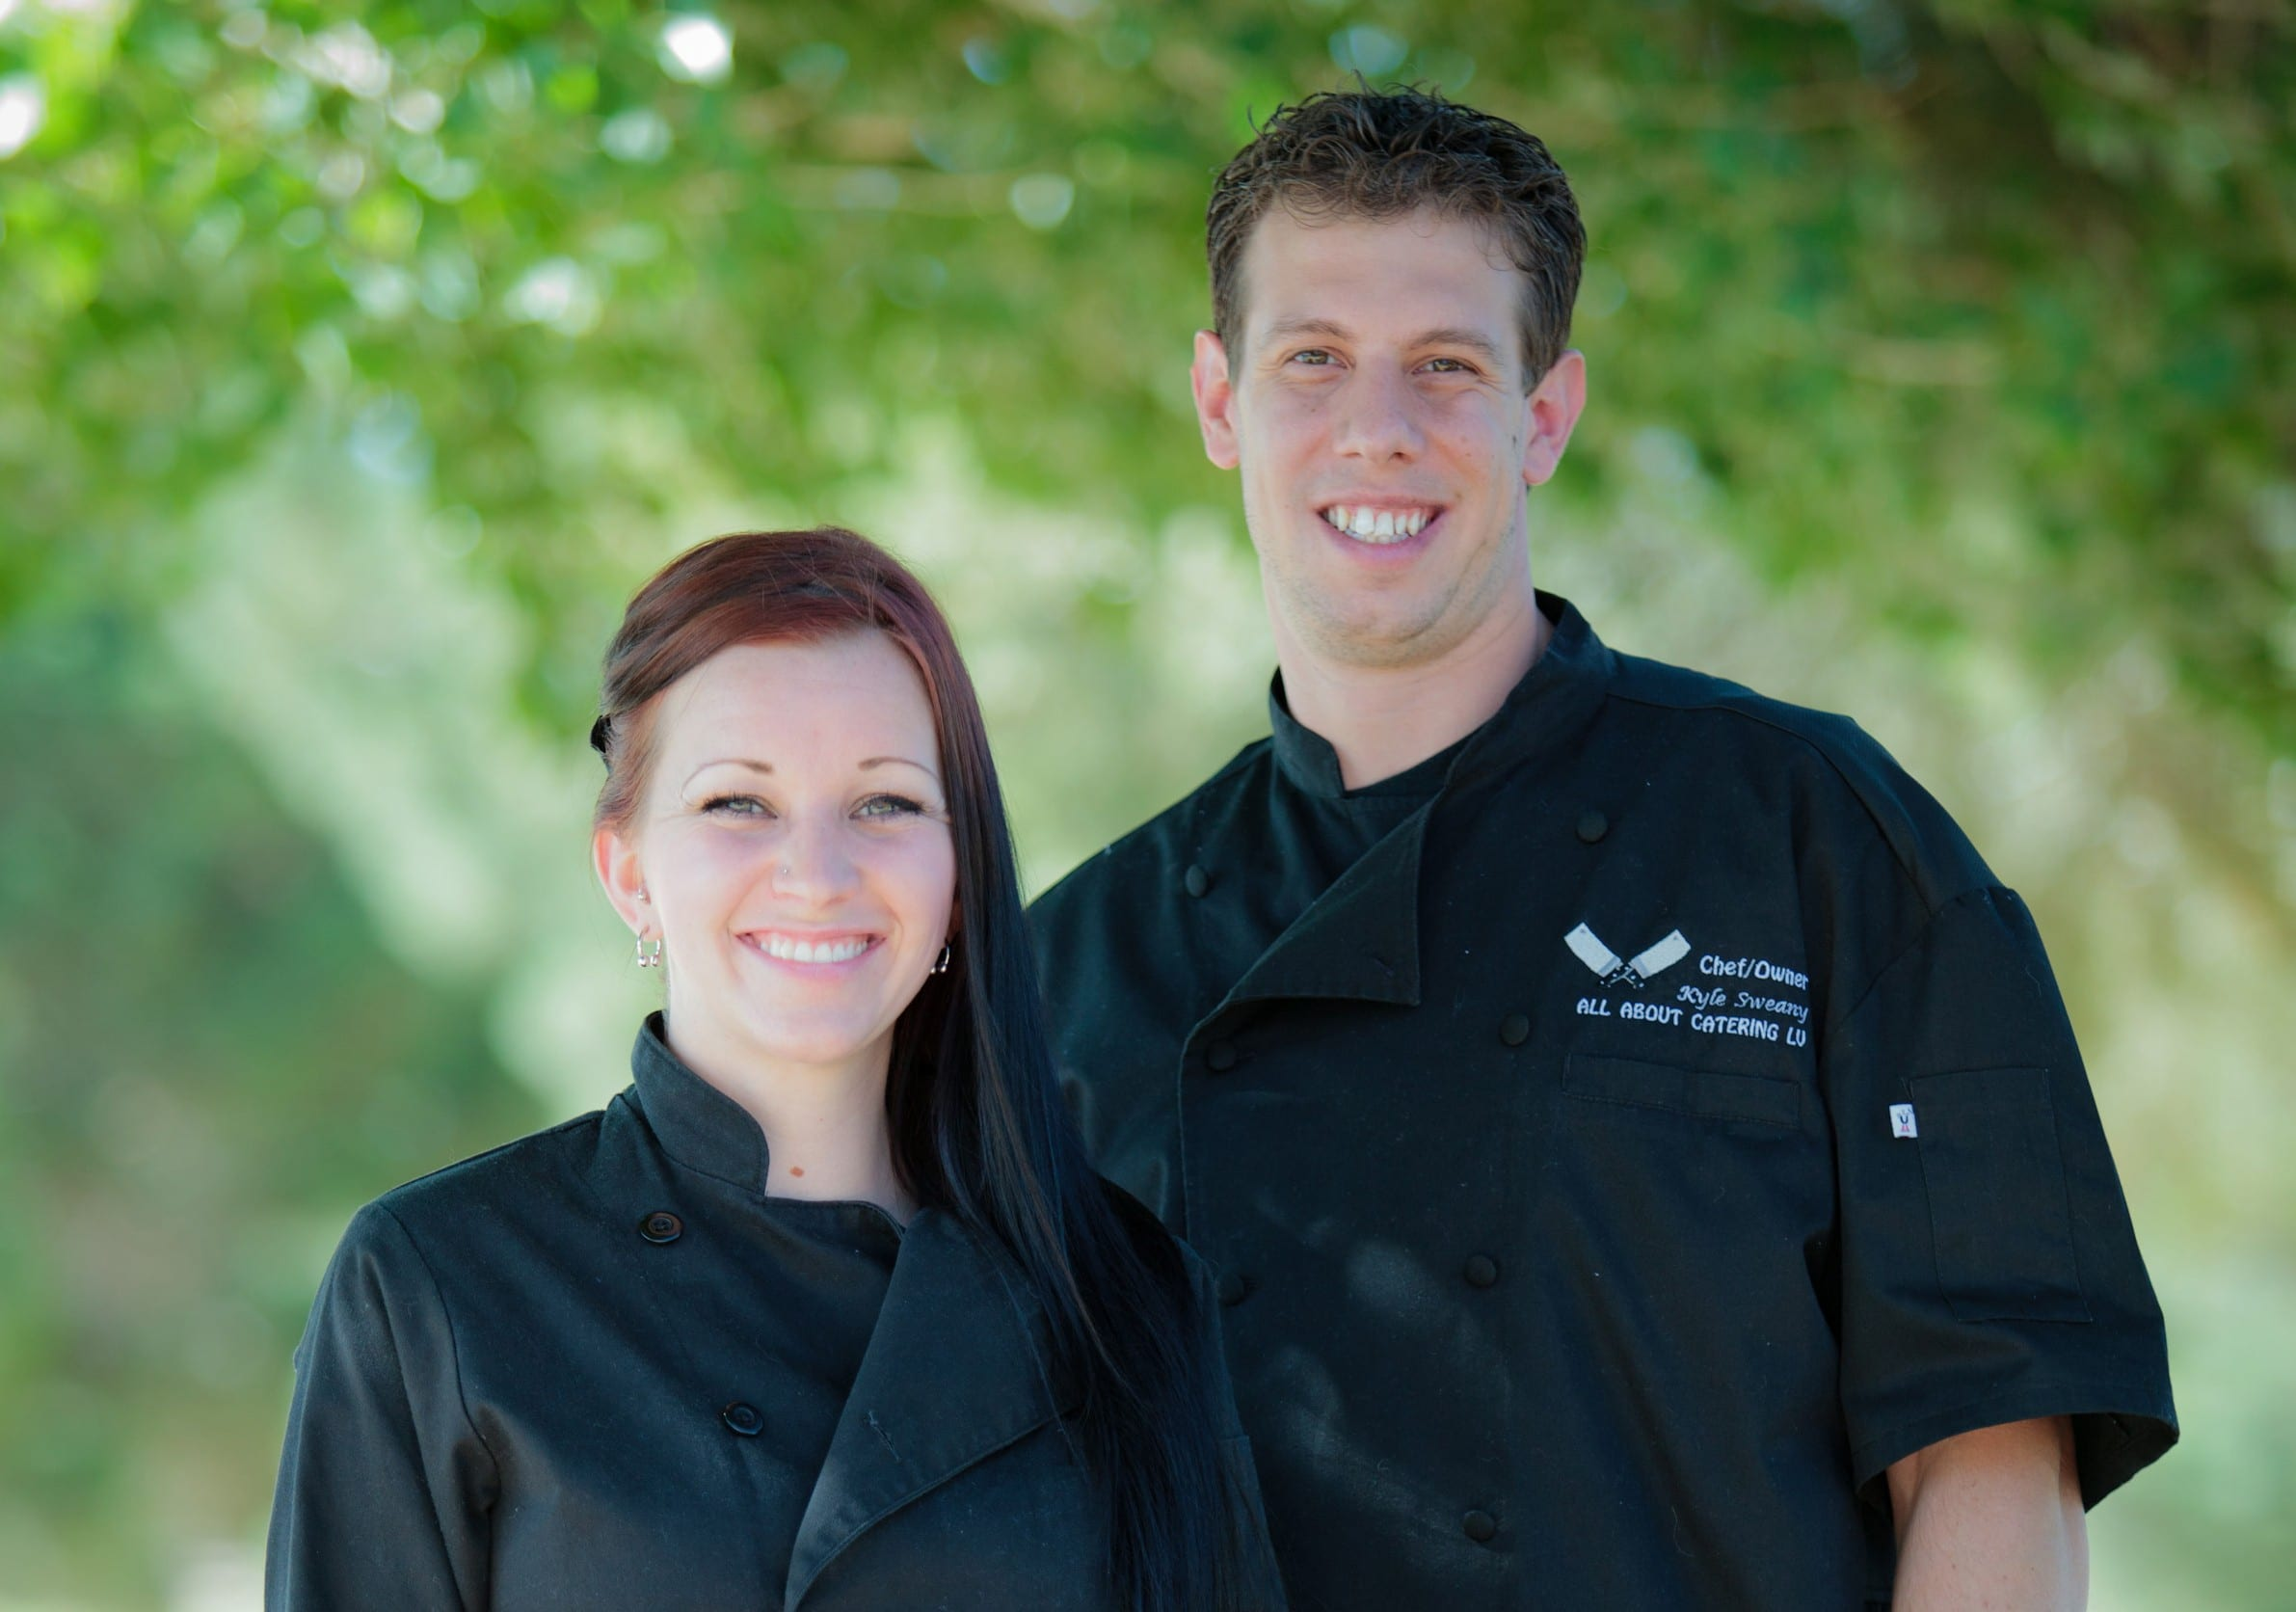 All About Catering Las Vegas - Food Photographer